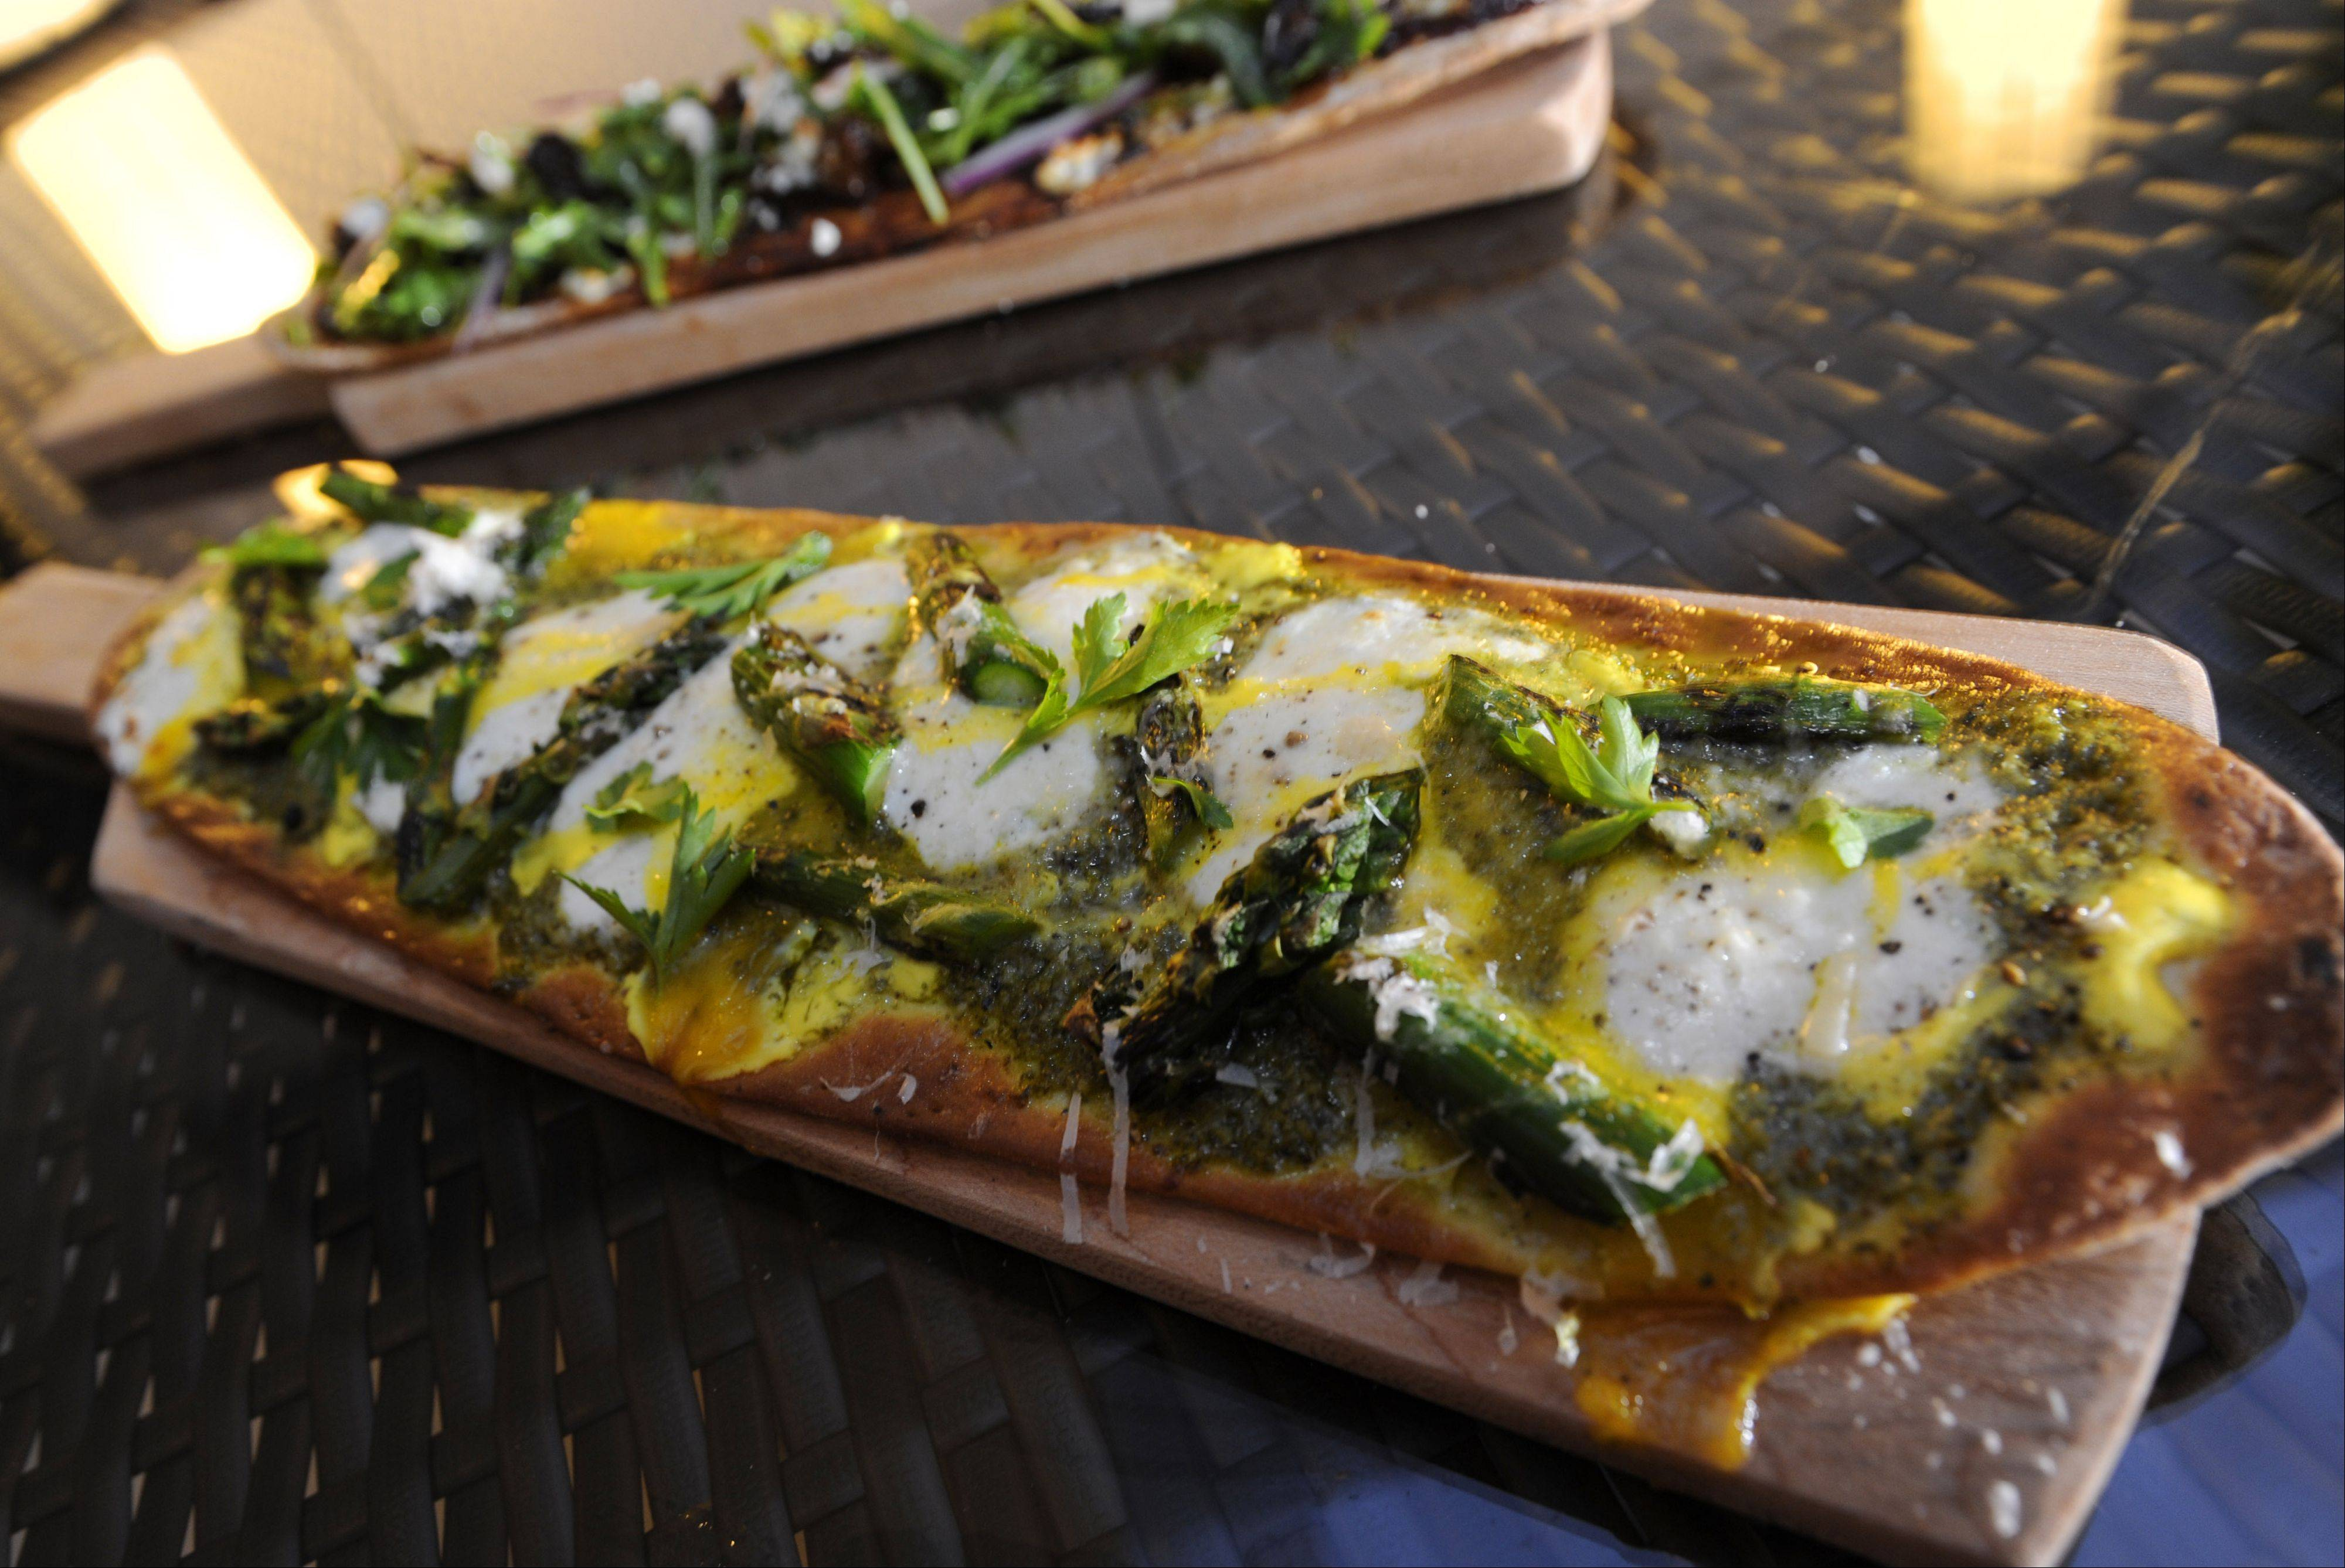 Grilled asparagus tops one of the flatbreads at The Terrace Lounge at the Renaissance Schaumburg.